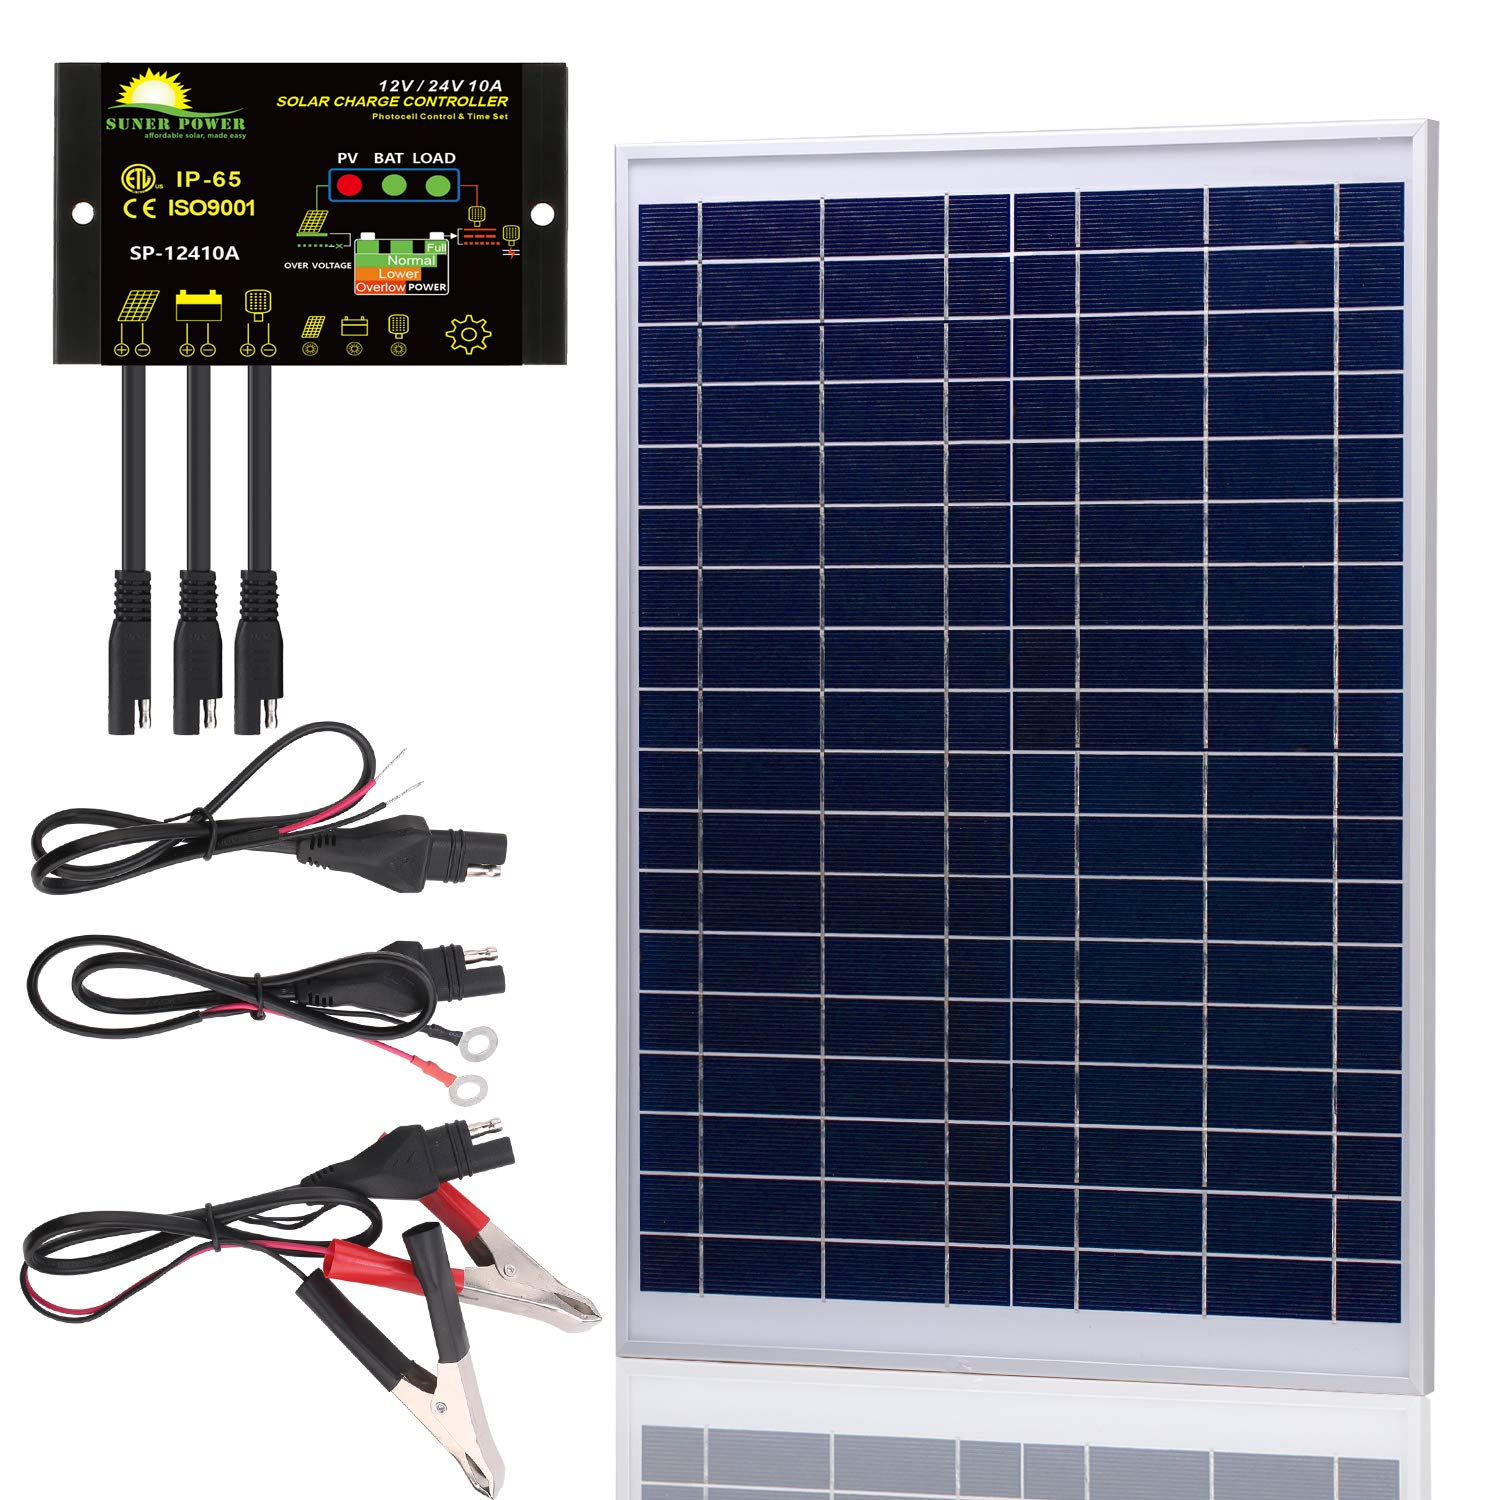 SUNER POWER [Upgraded] 20 Watts 12V Off Grid Solar Panel Kit - Waterproof 20W Solar Panel + Photocell 10A Solar Charge Controller with Work Time Setting + SAE Connection Cable Kits by SUNER POWER